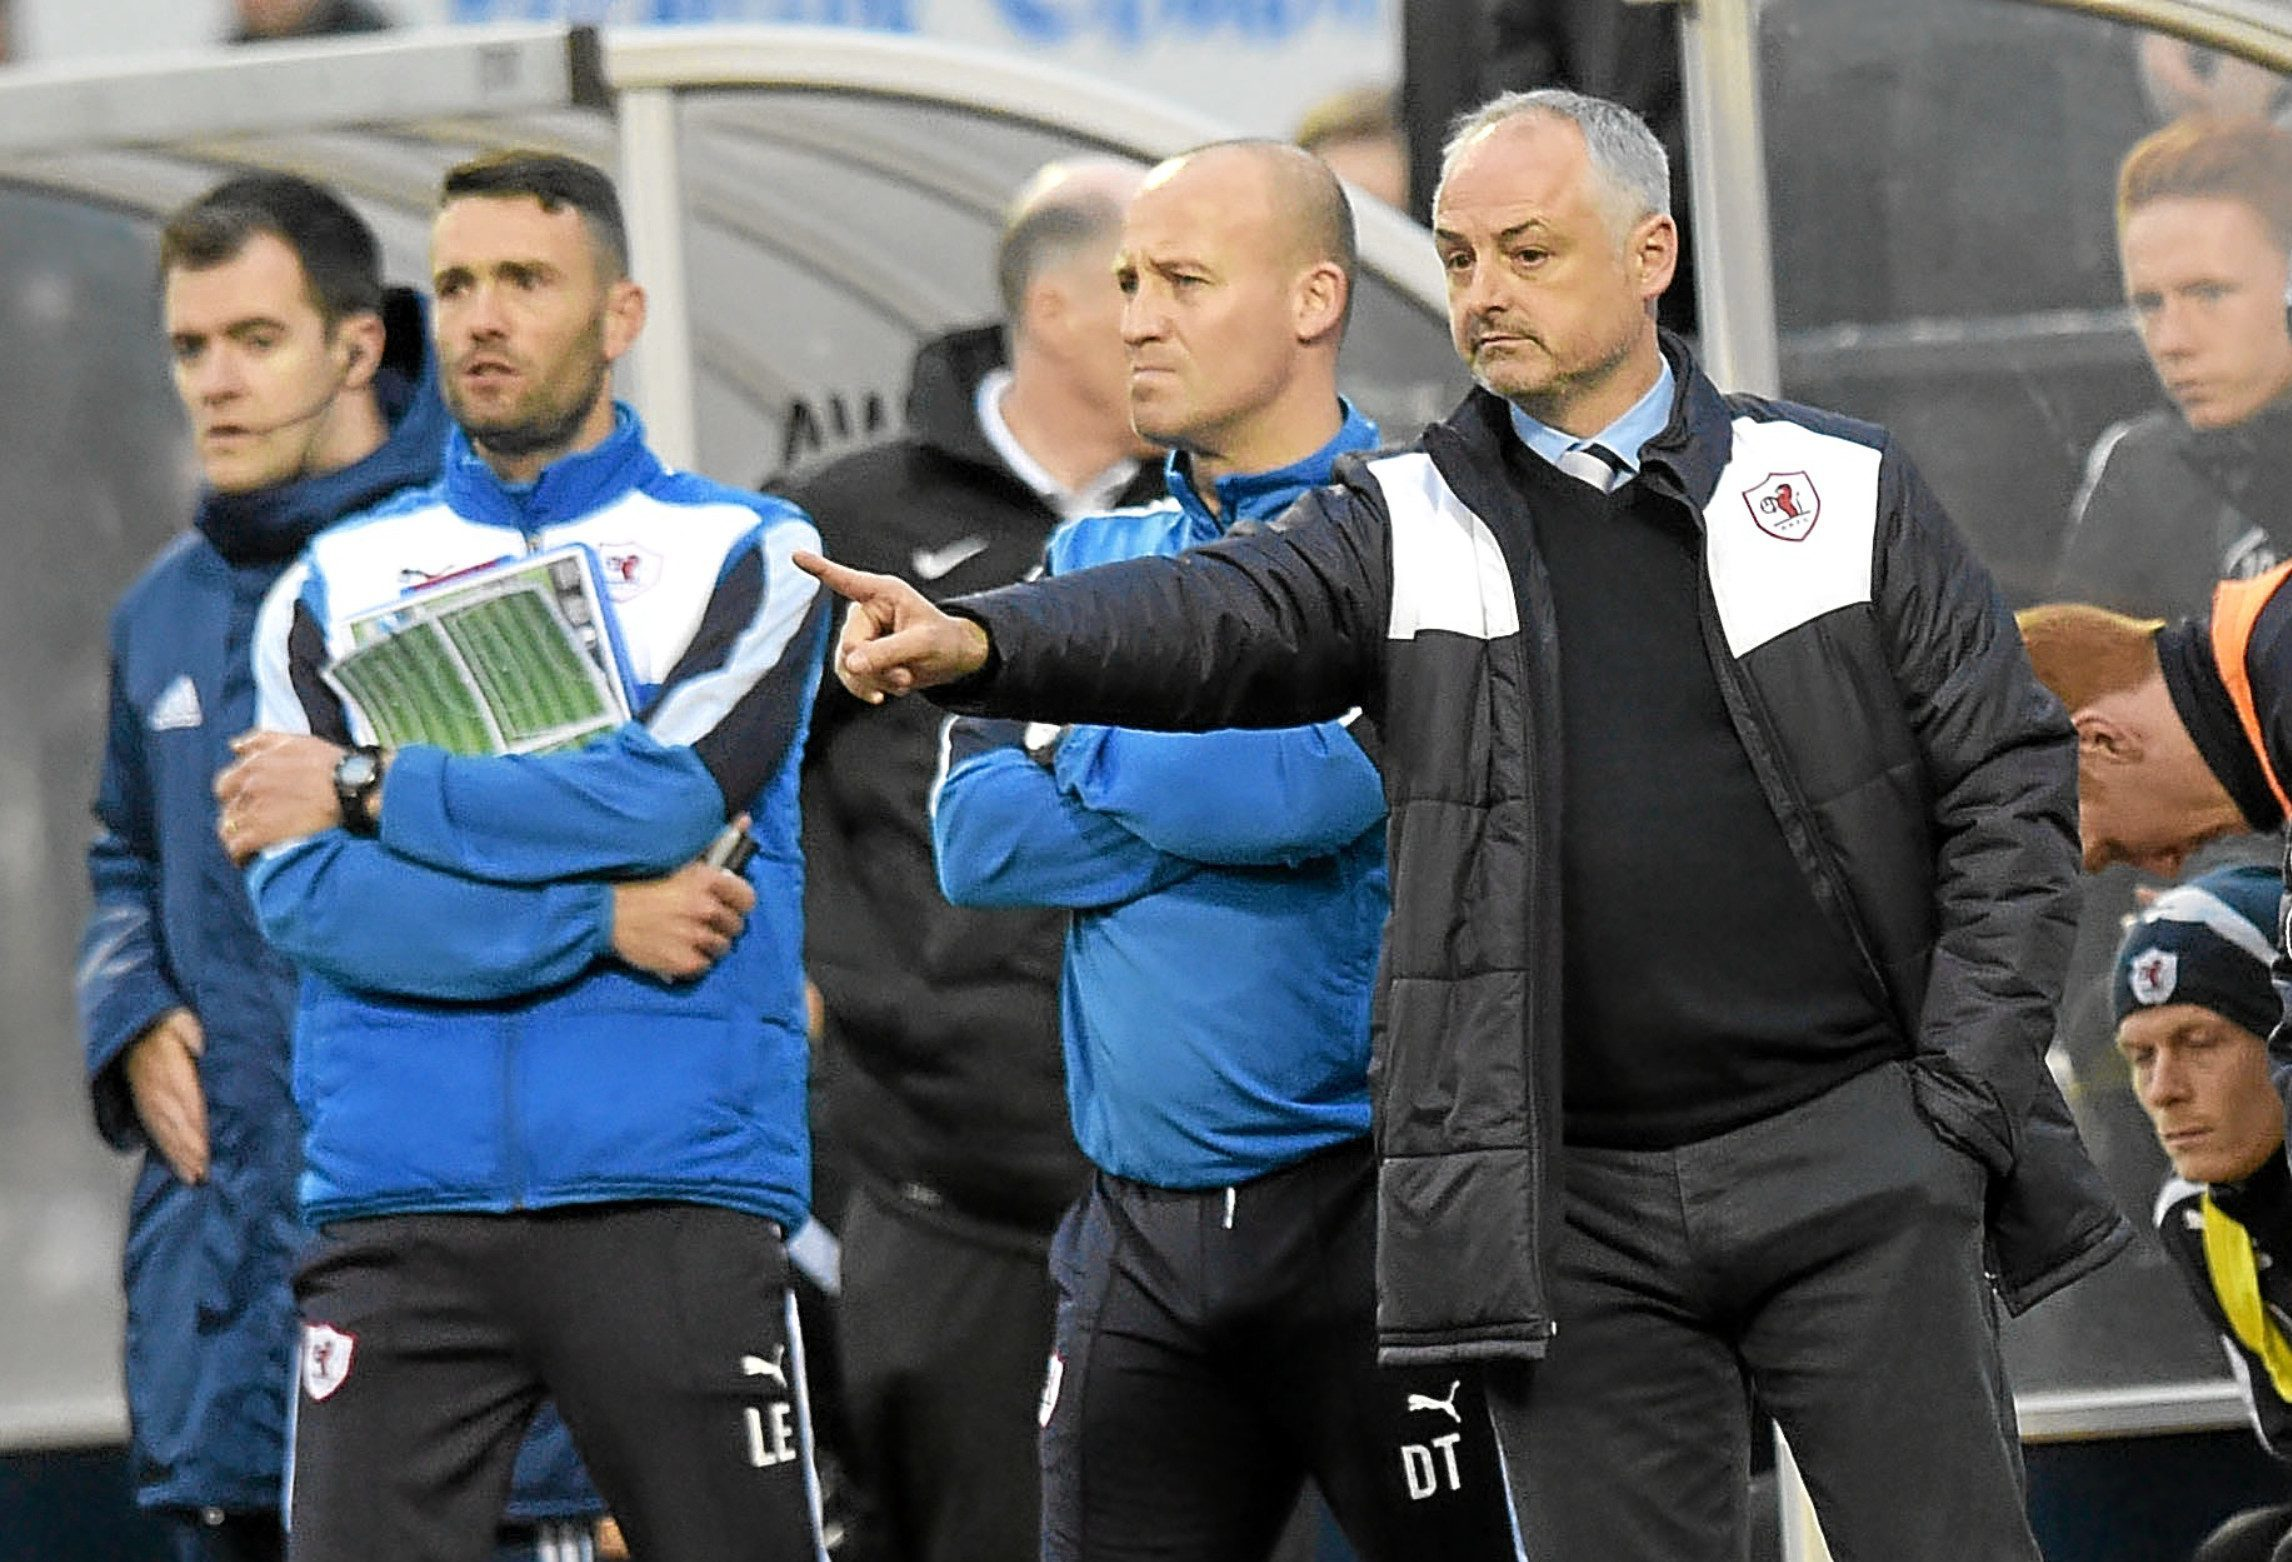 Manager Ray McKinnon took his shock troops Raith Rovers to fourth place in the Championship and a place in the play-offs for promotion to the Premiership, where they narrowly lost out to Hibs.